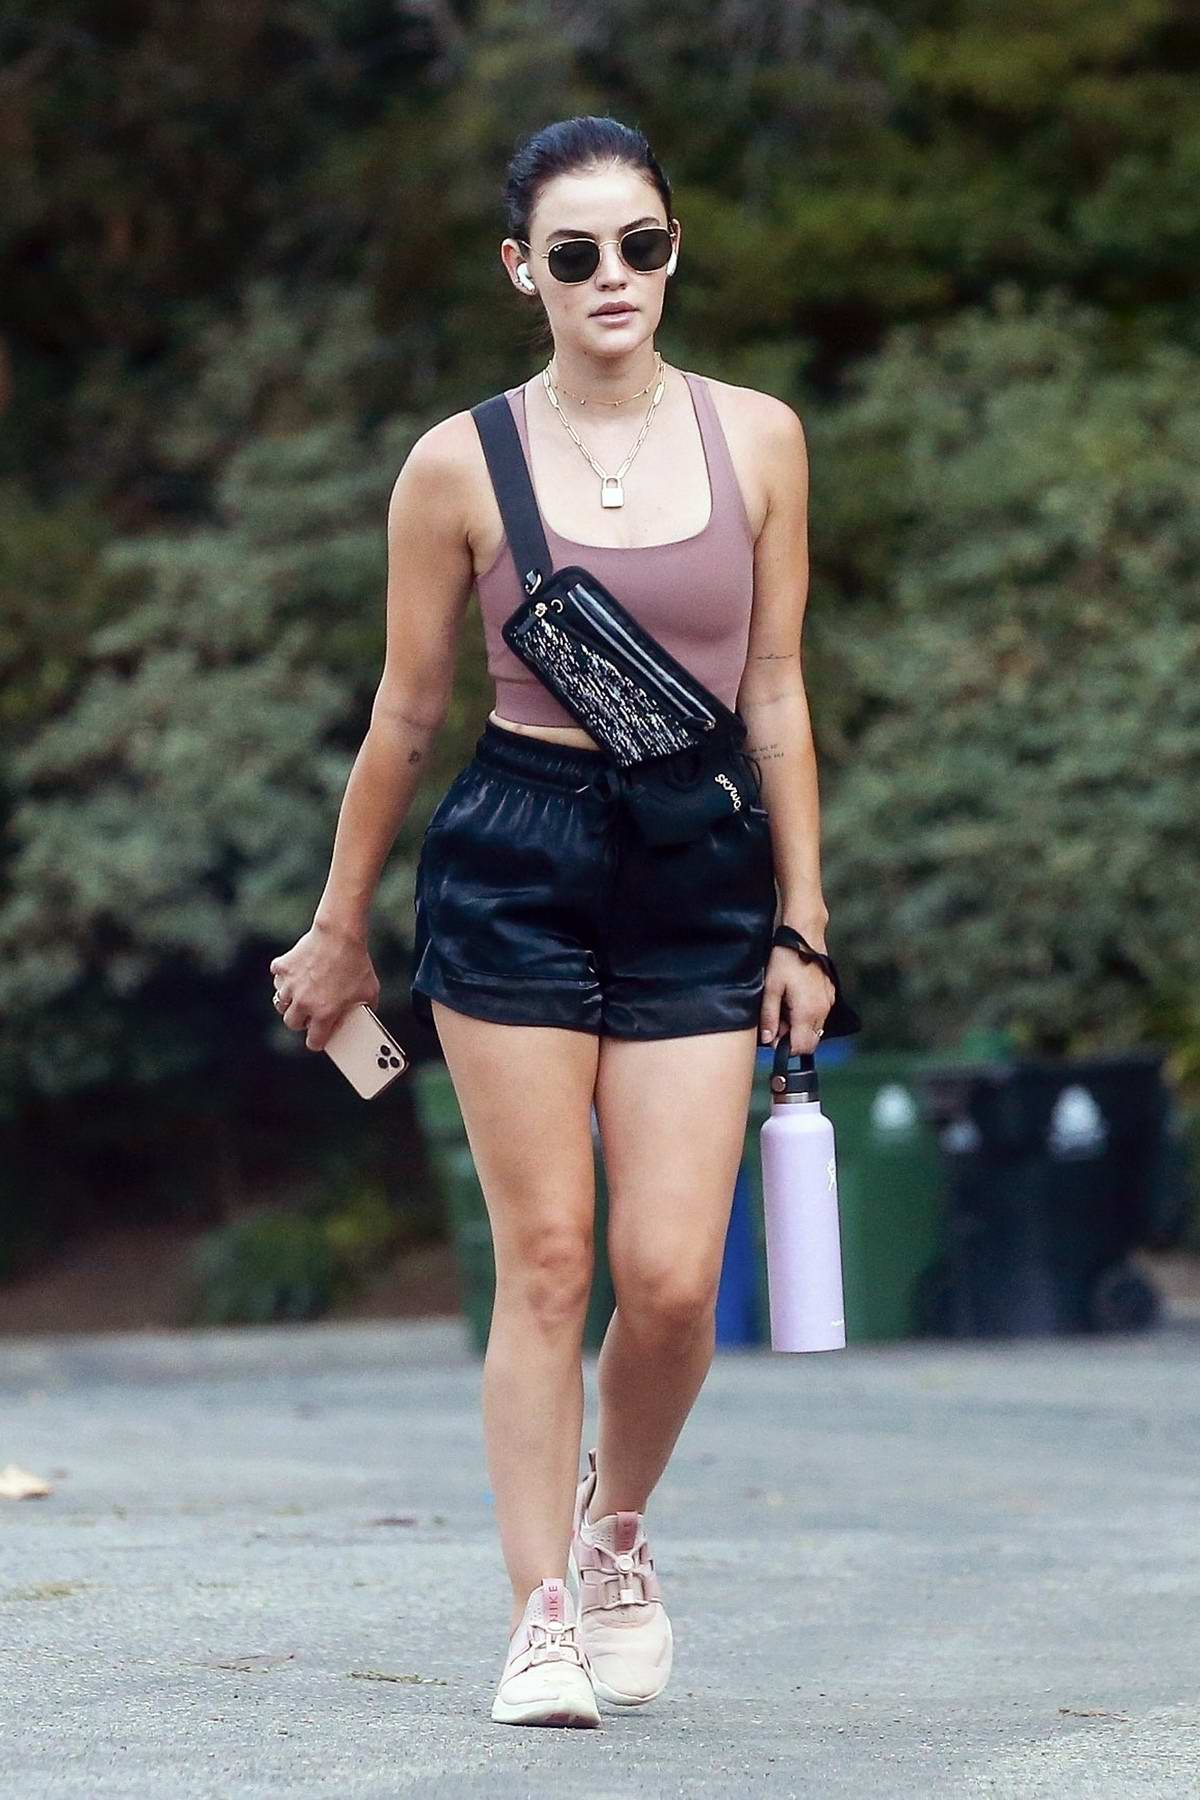 Lucy Hale wears a mauve sports bra and black shorts for her daily hike in Los Angeles